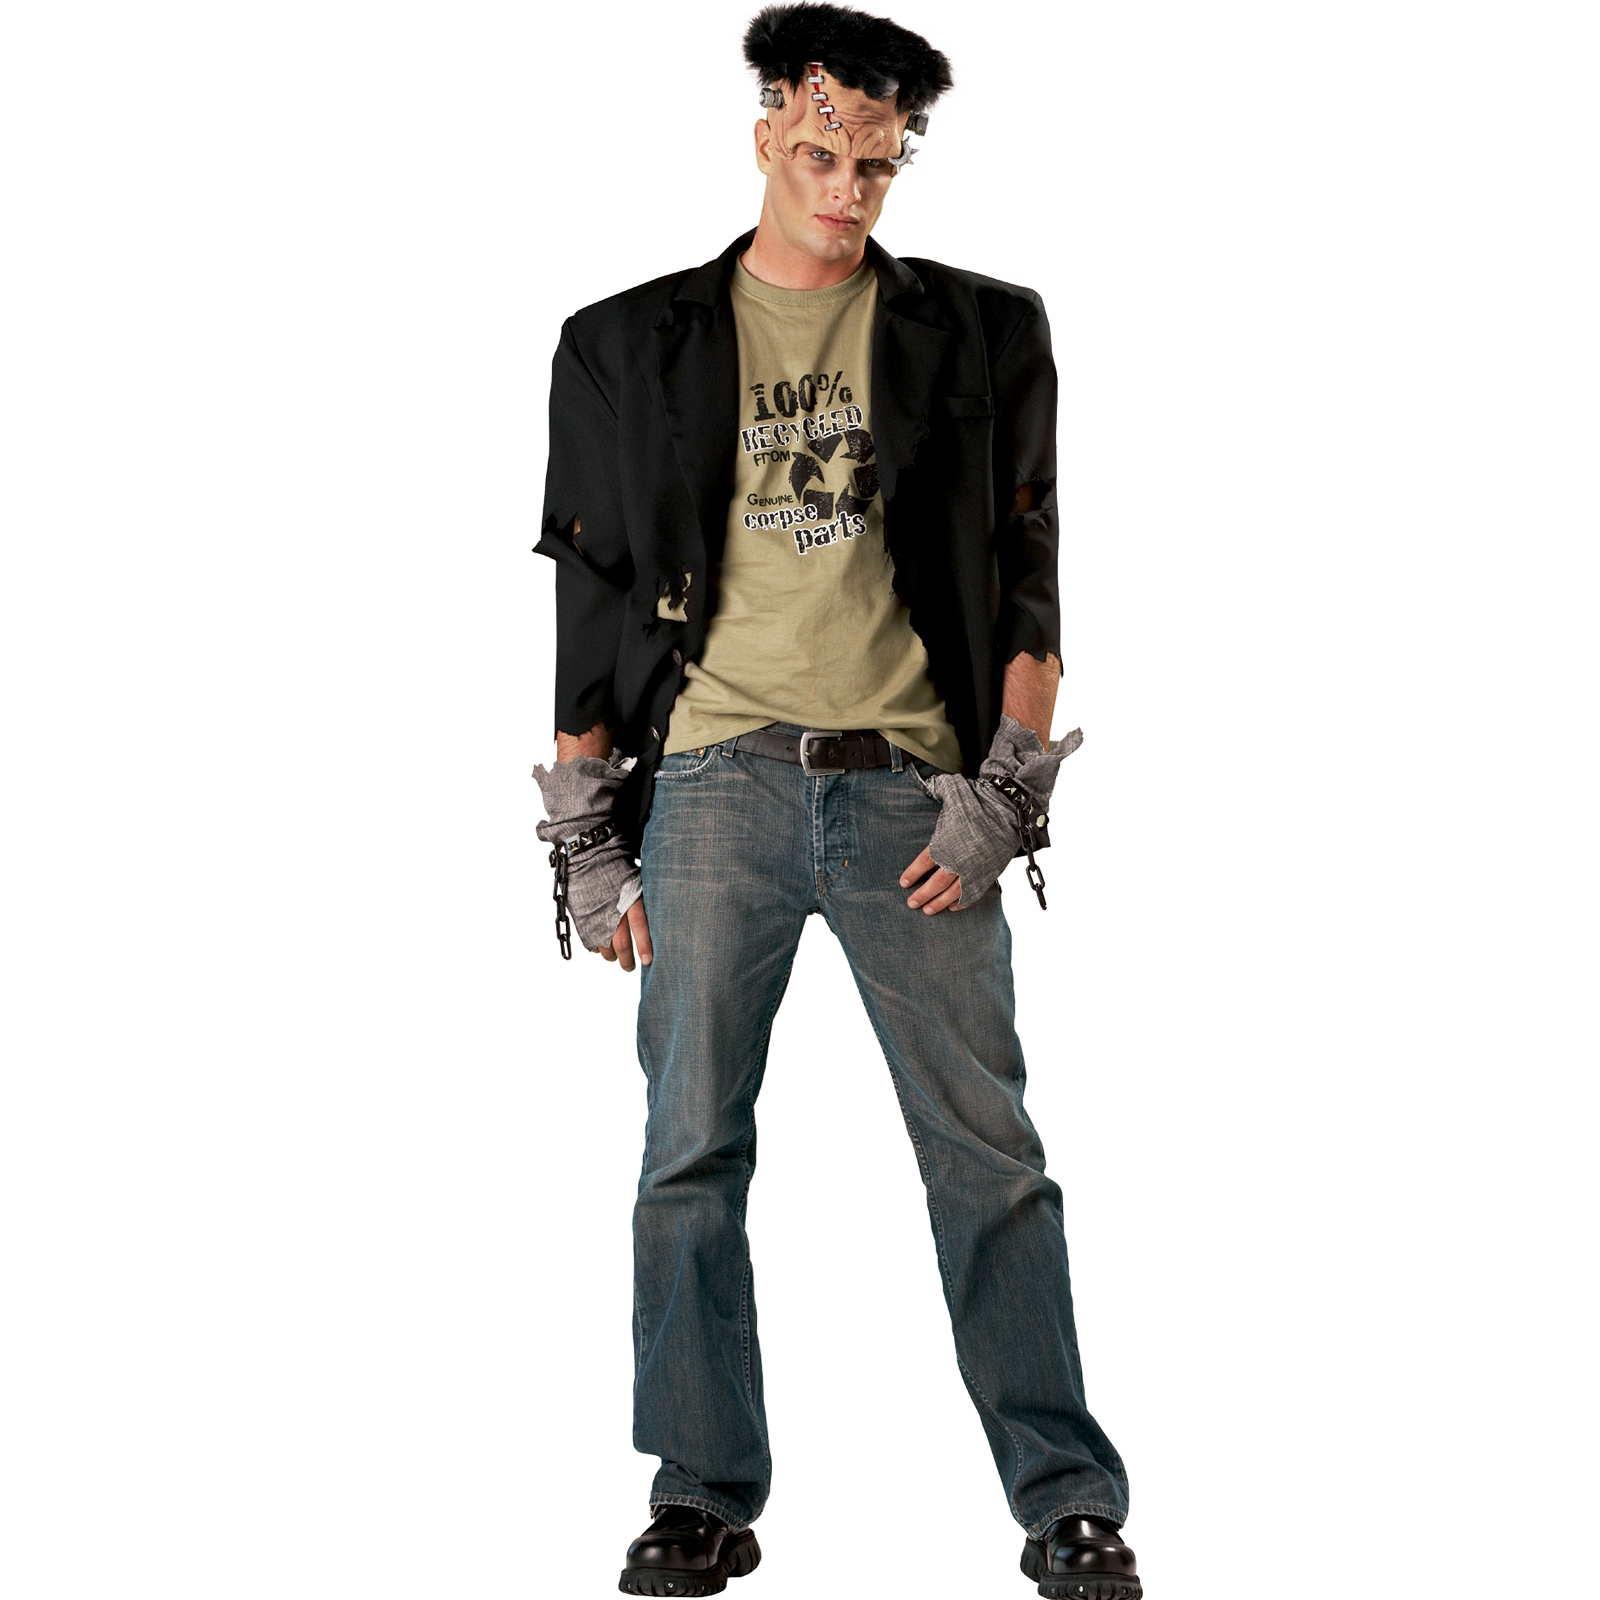 frankenstein costume